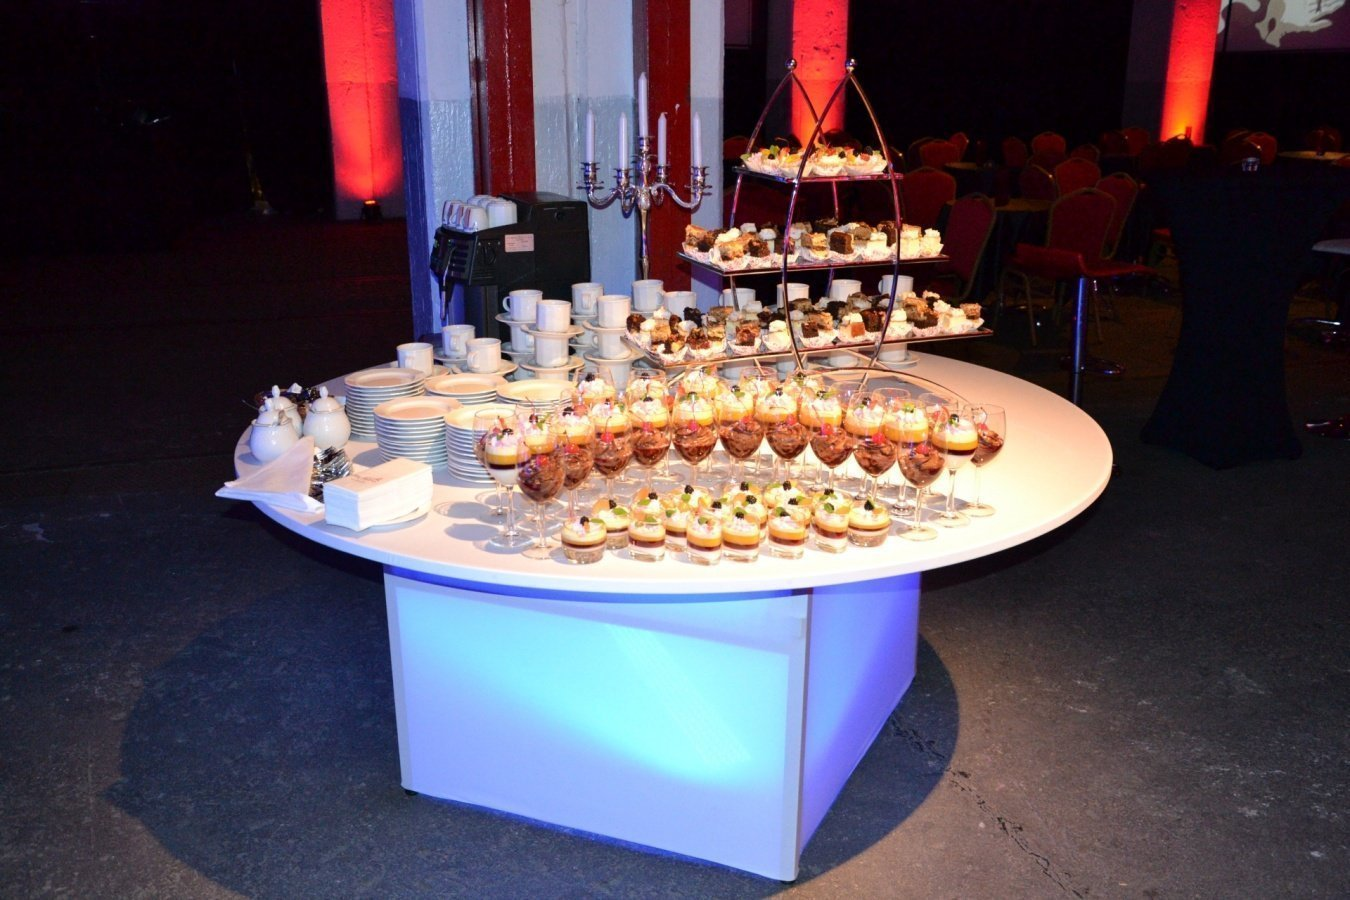 catering/catering_m3.jpg